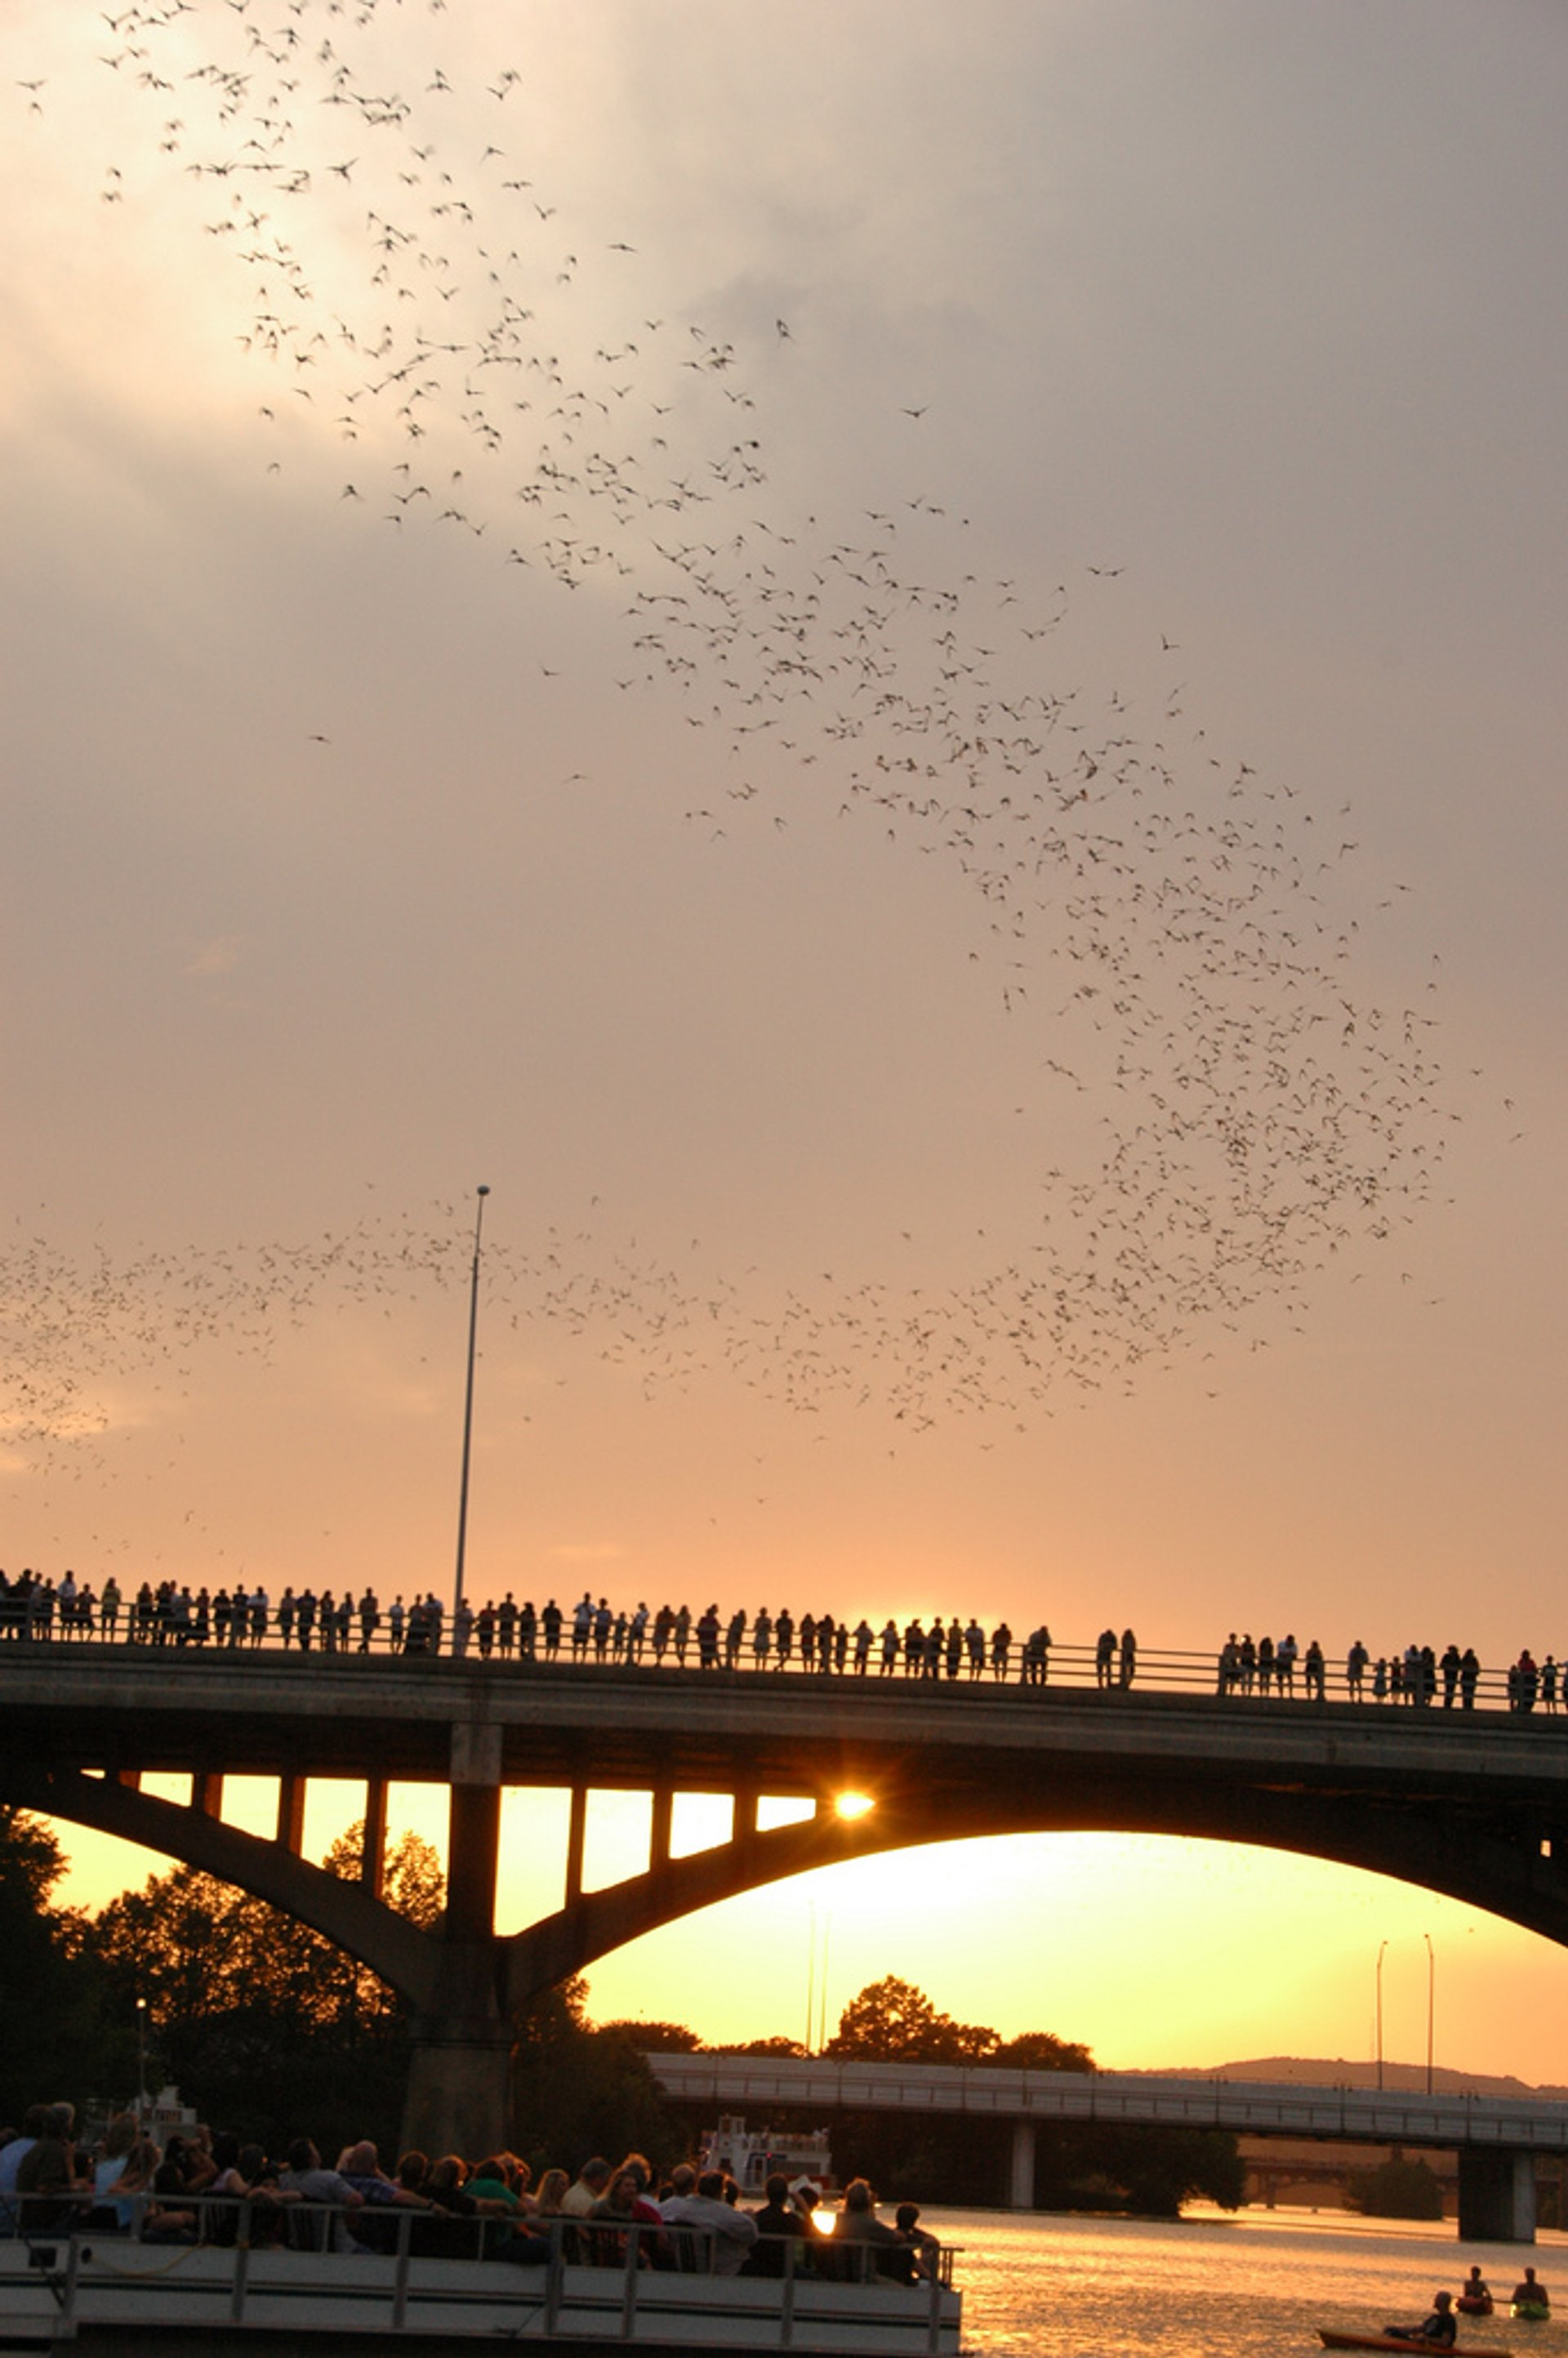 Bats leaving the Congress St. Bridge, Austin 2019